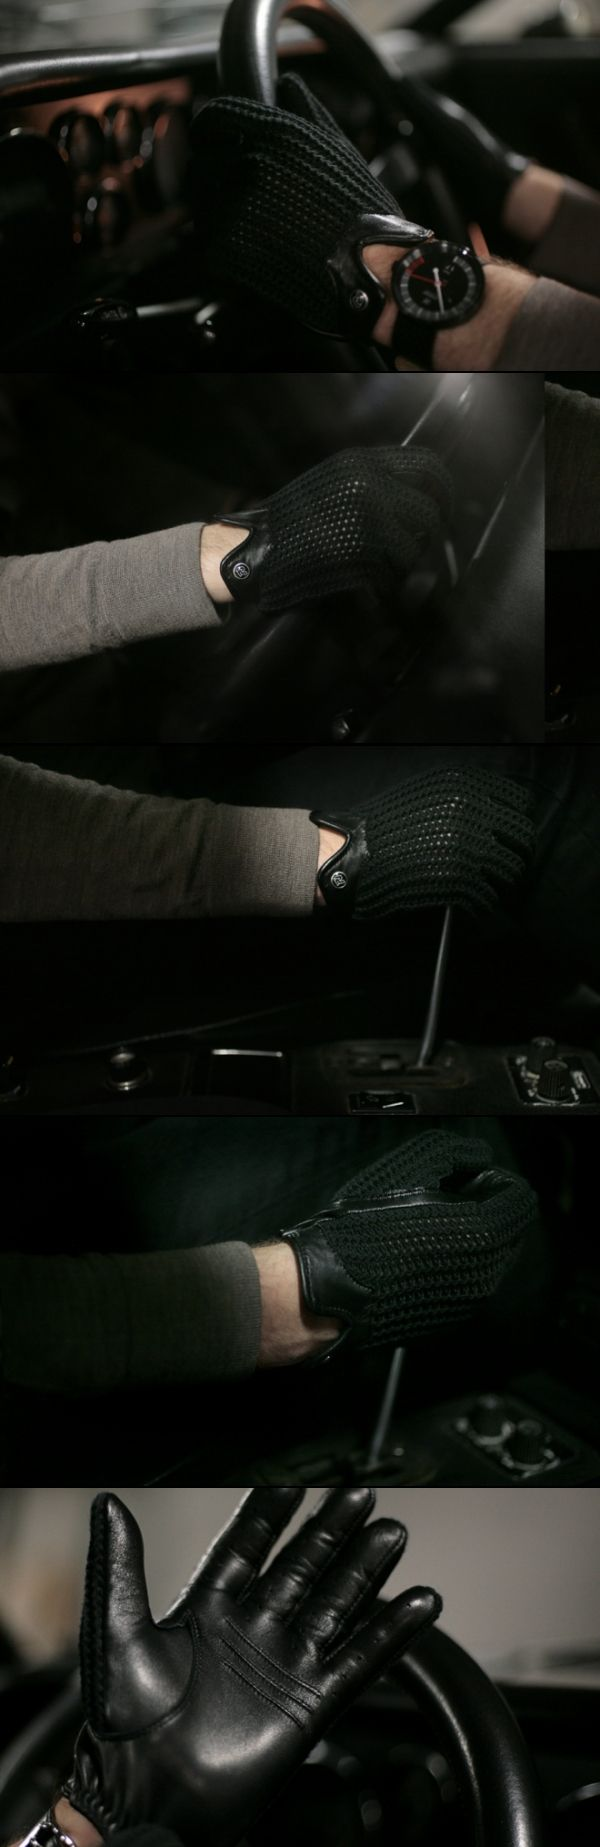 Driving gloves like ryan gosling - 17 Best Images About Driving Gloves On Pinterest Men S Leather Deerskin And Gentleman